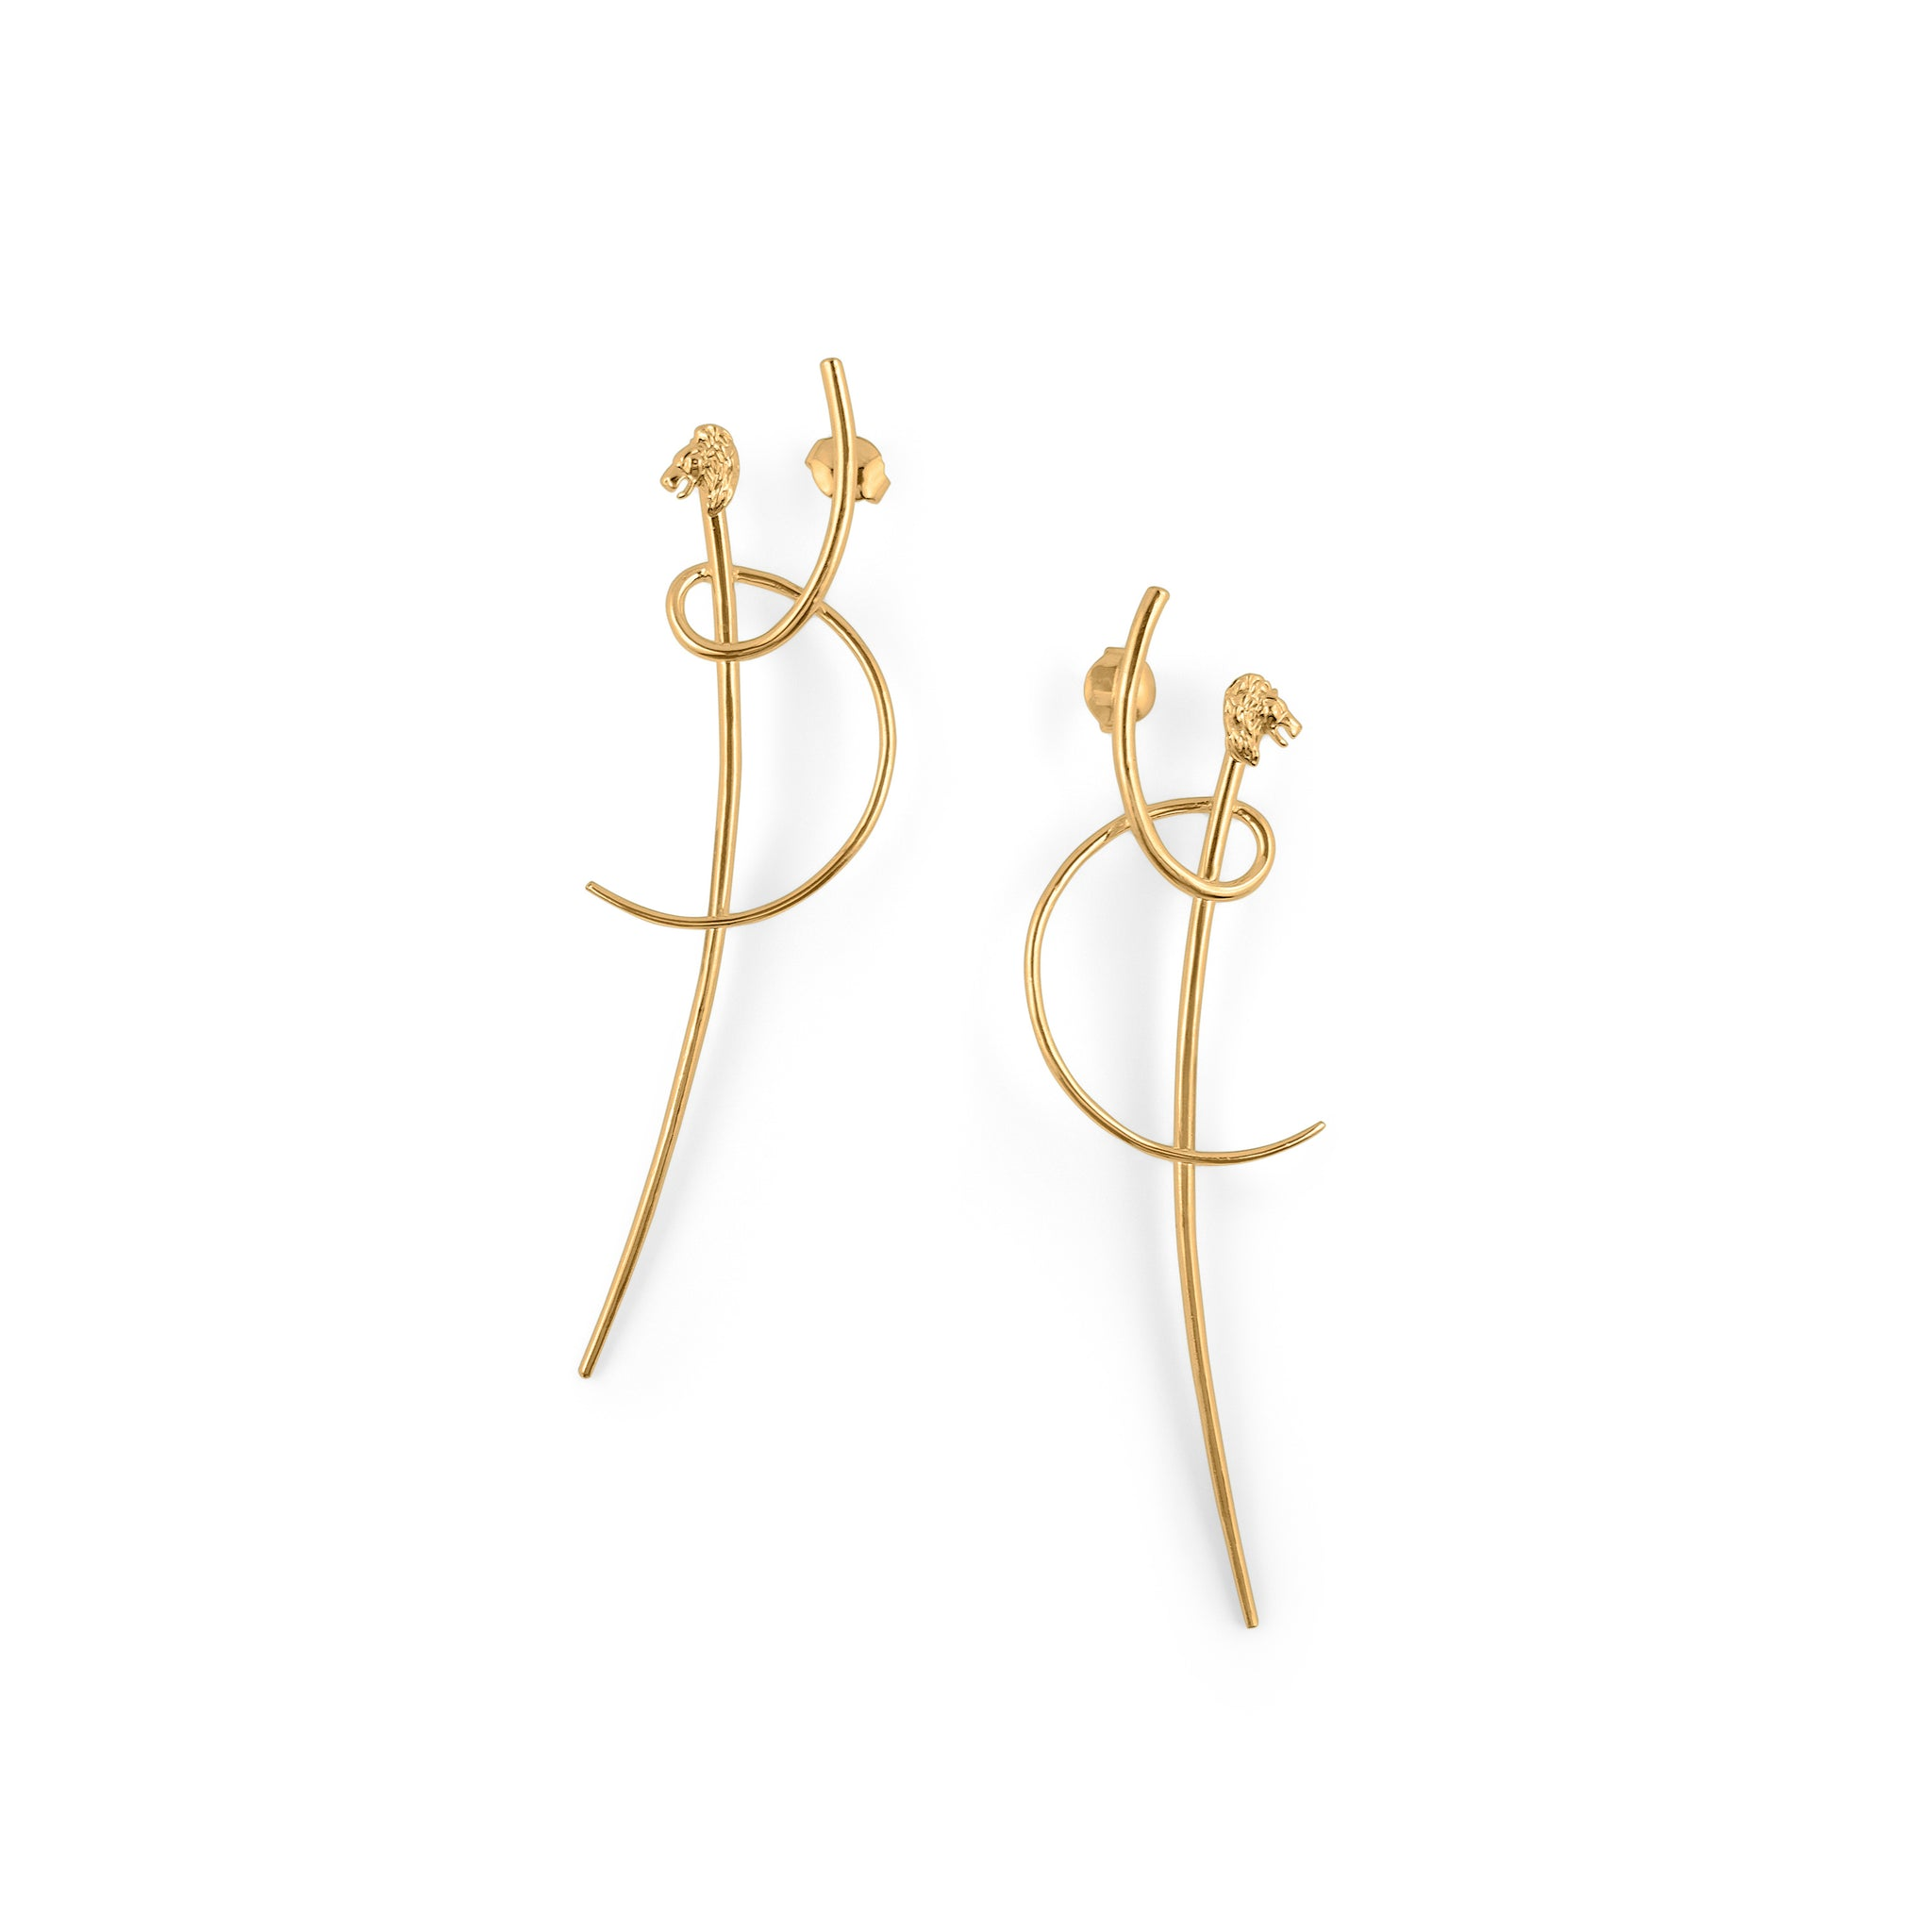 MISHO - KATANA EARRINGS